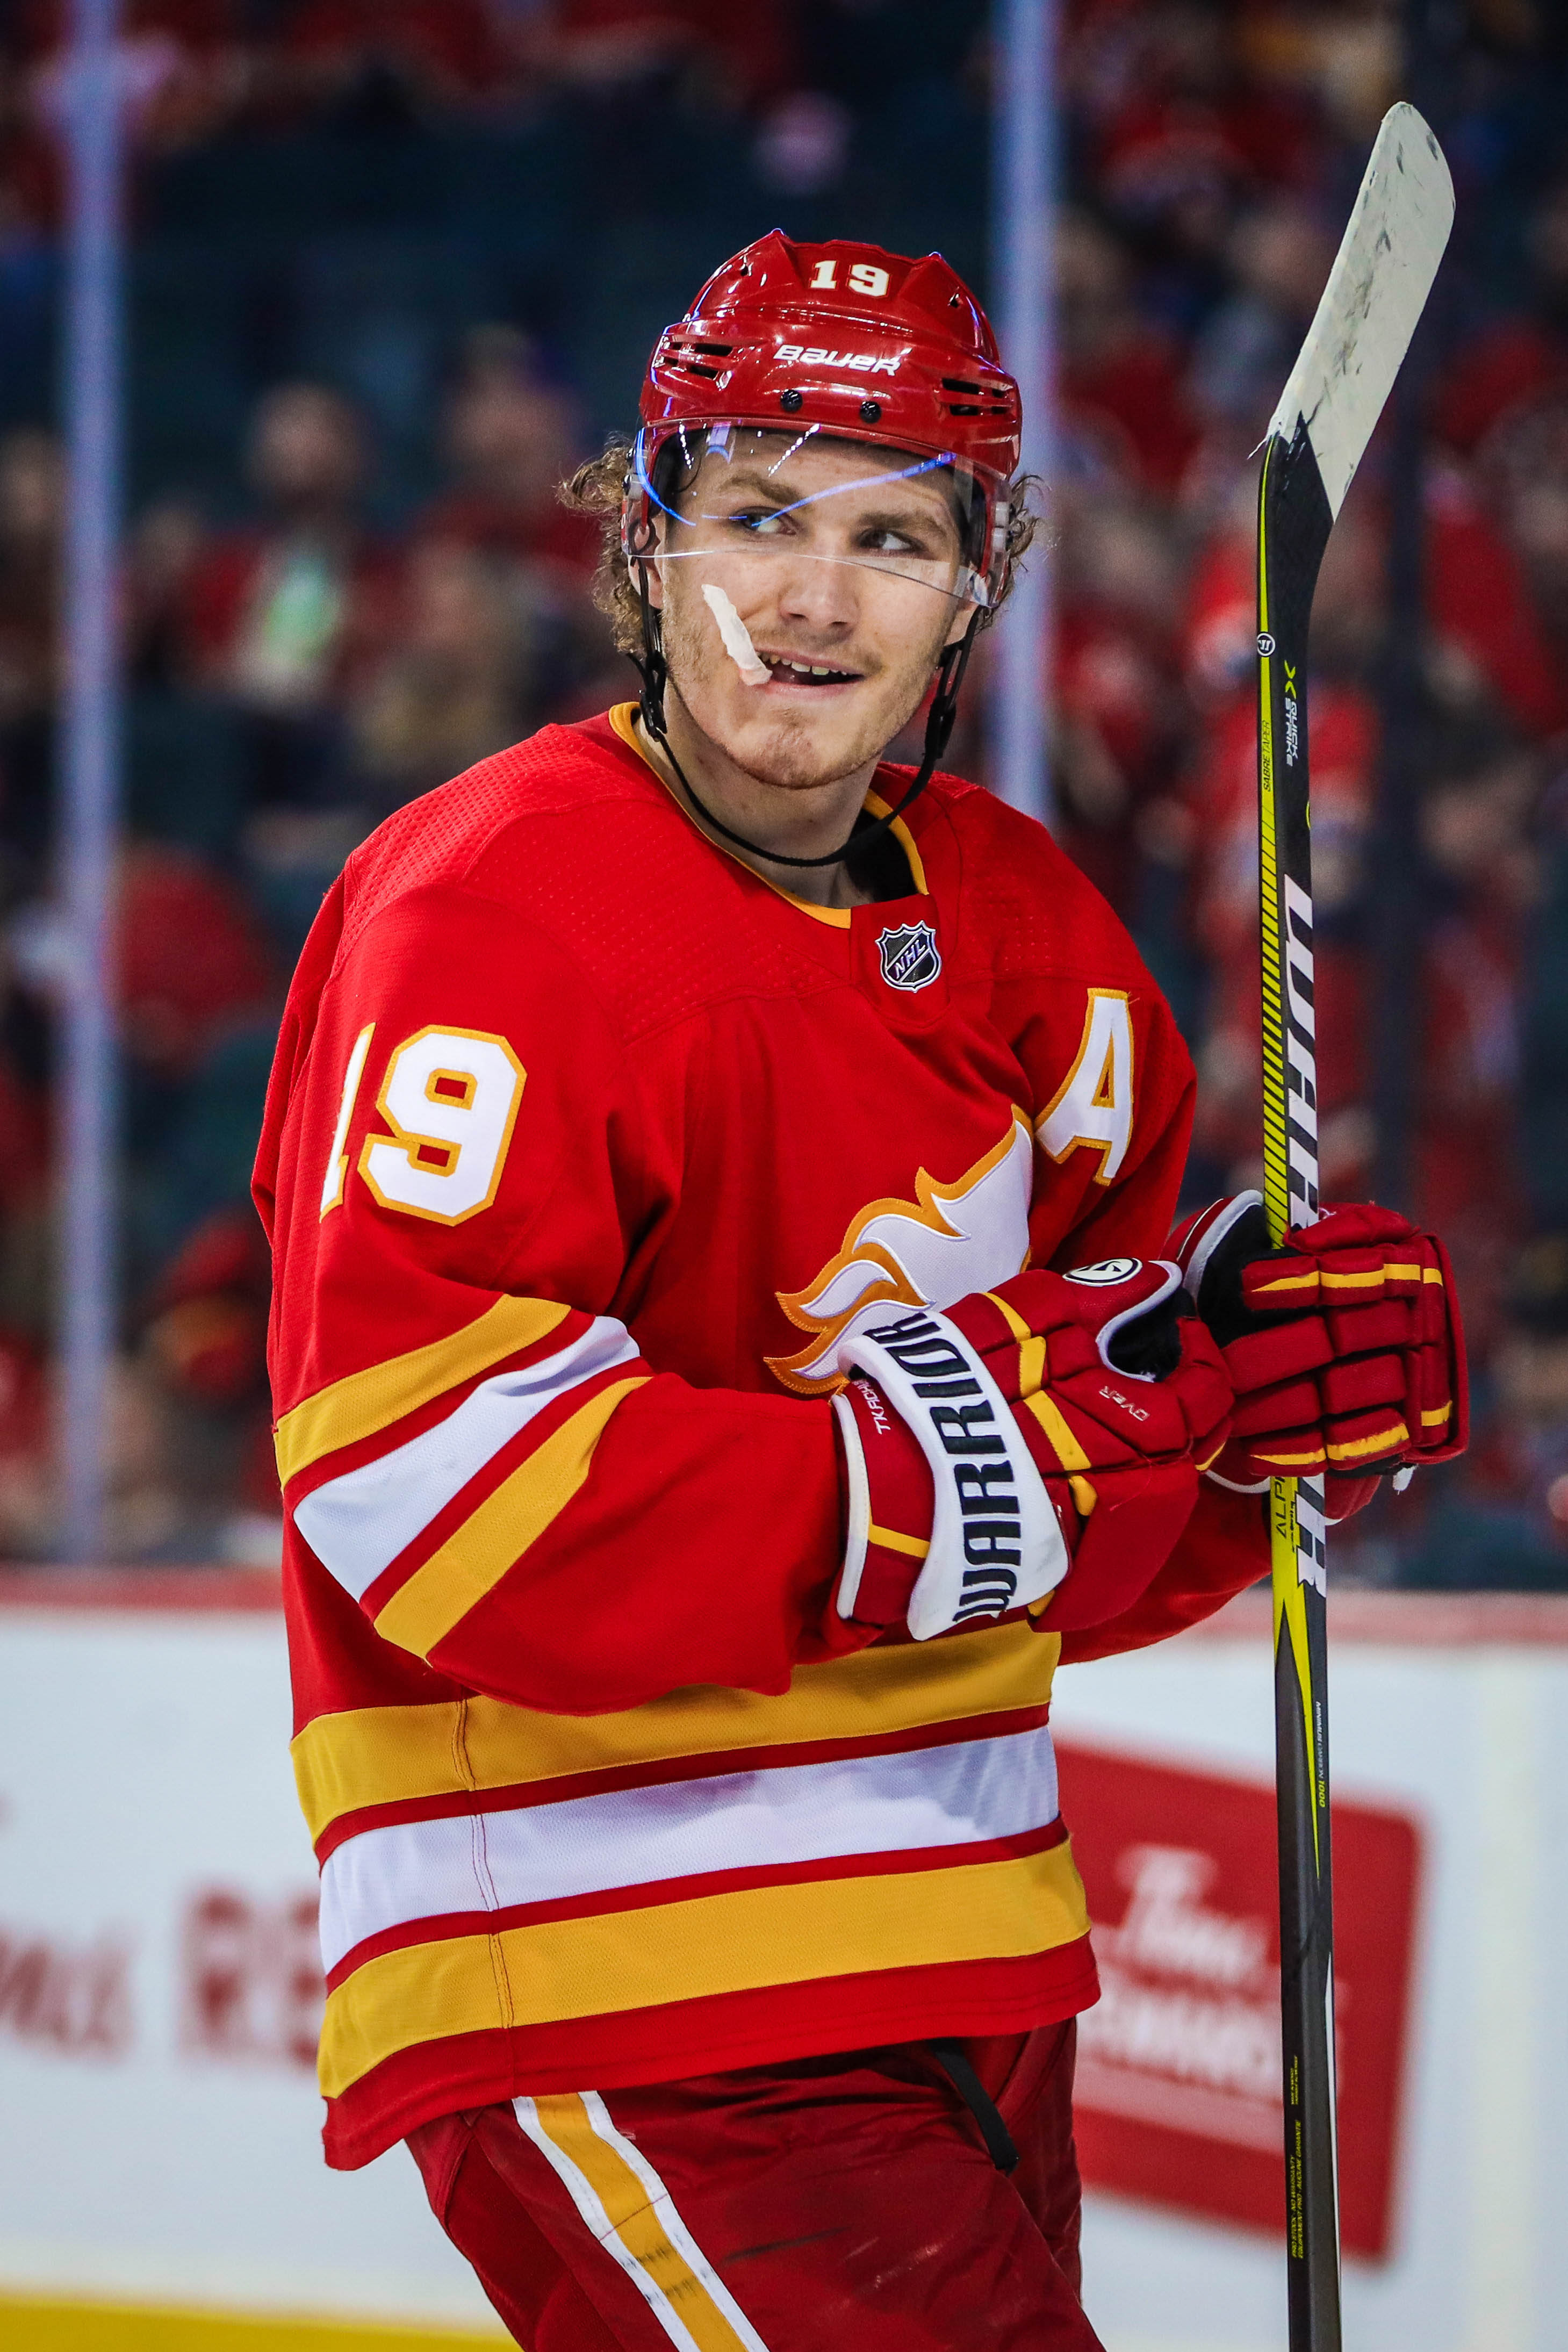 f4183a1057e Tkachuk is among the class of high-end restricted free agents that is going  to be fascinating to follow. Their agents have suggested that they don t  want ...